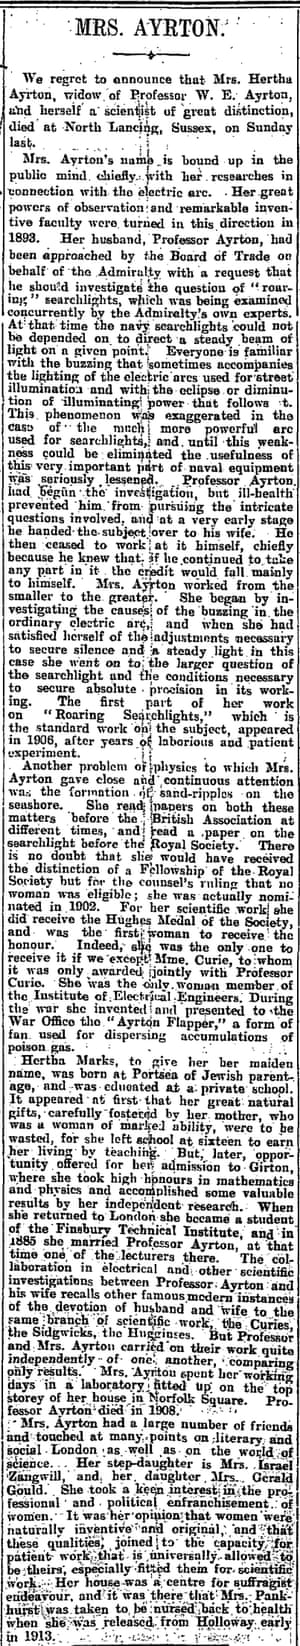 Manchester Guardian, 28 August 1923